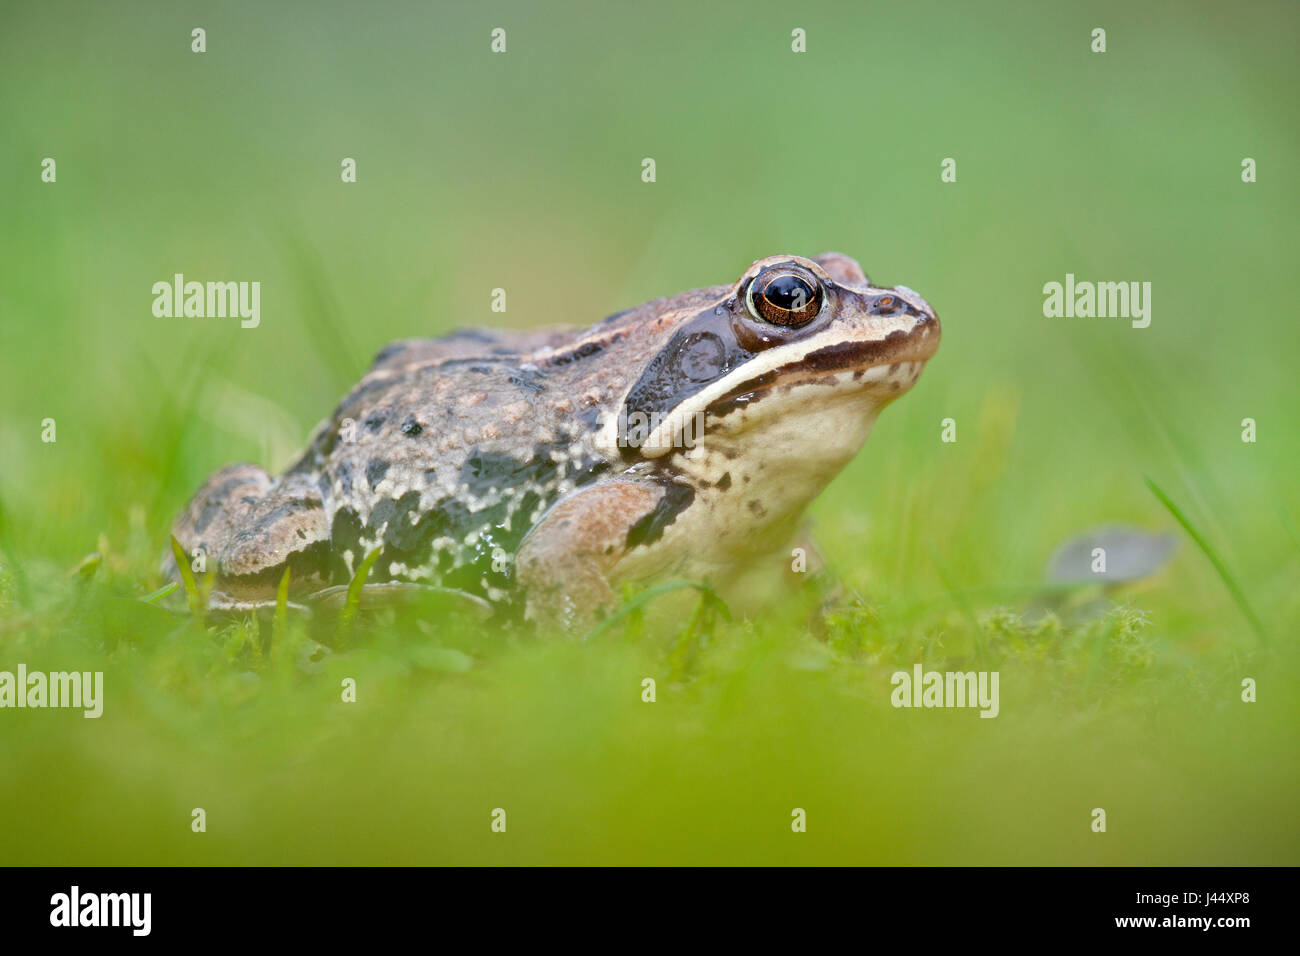 photo of a moor frog in green grass with a blurred green foreground and background - Stock Image